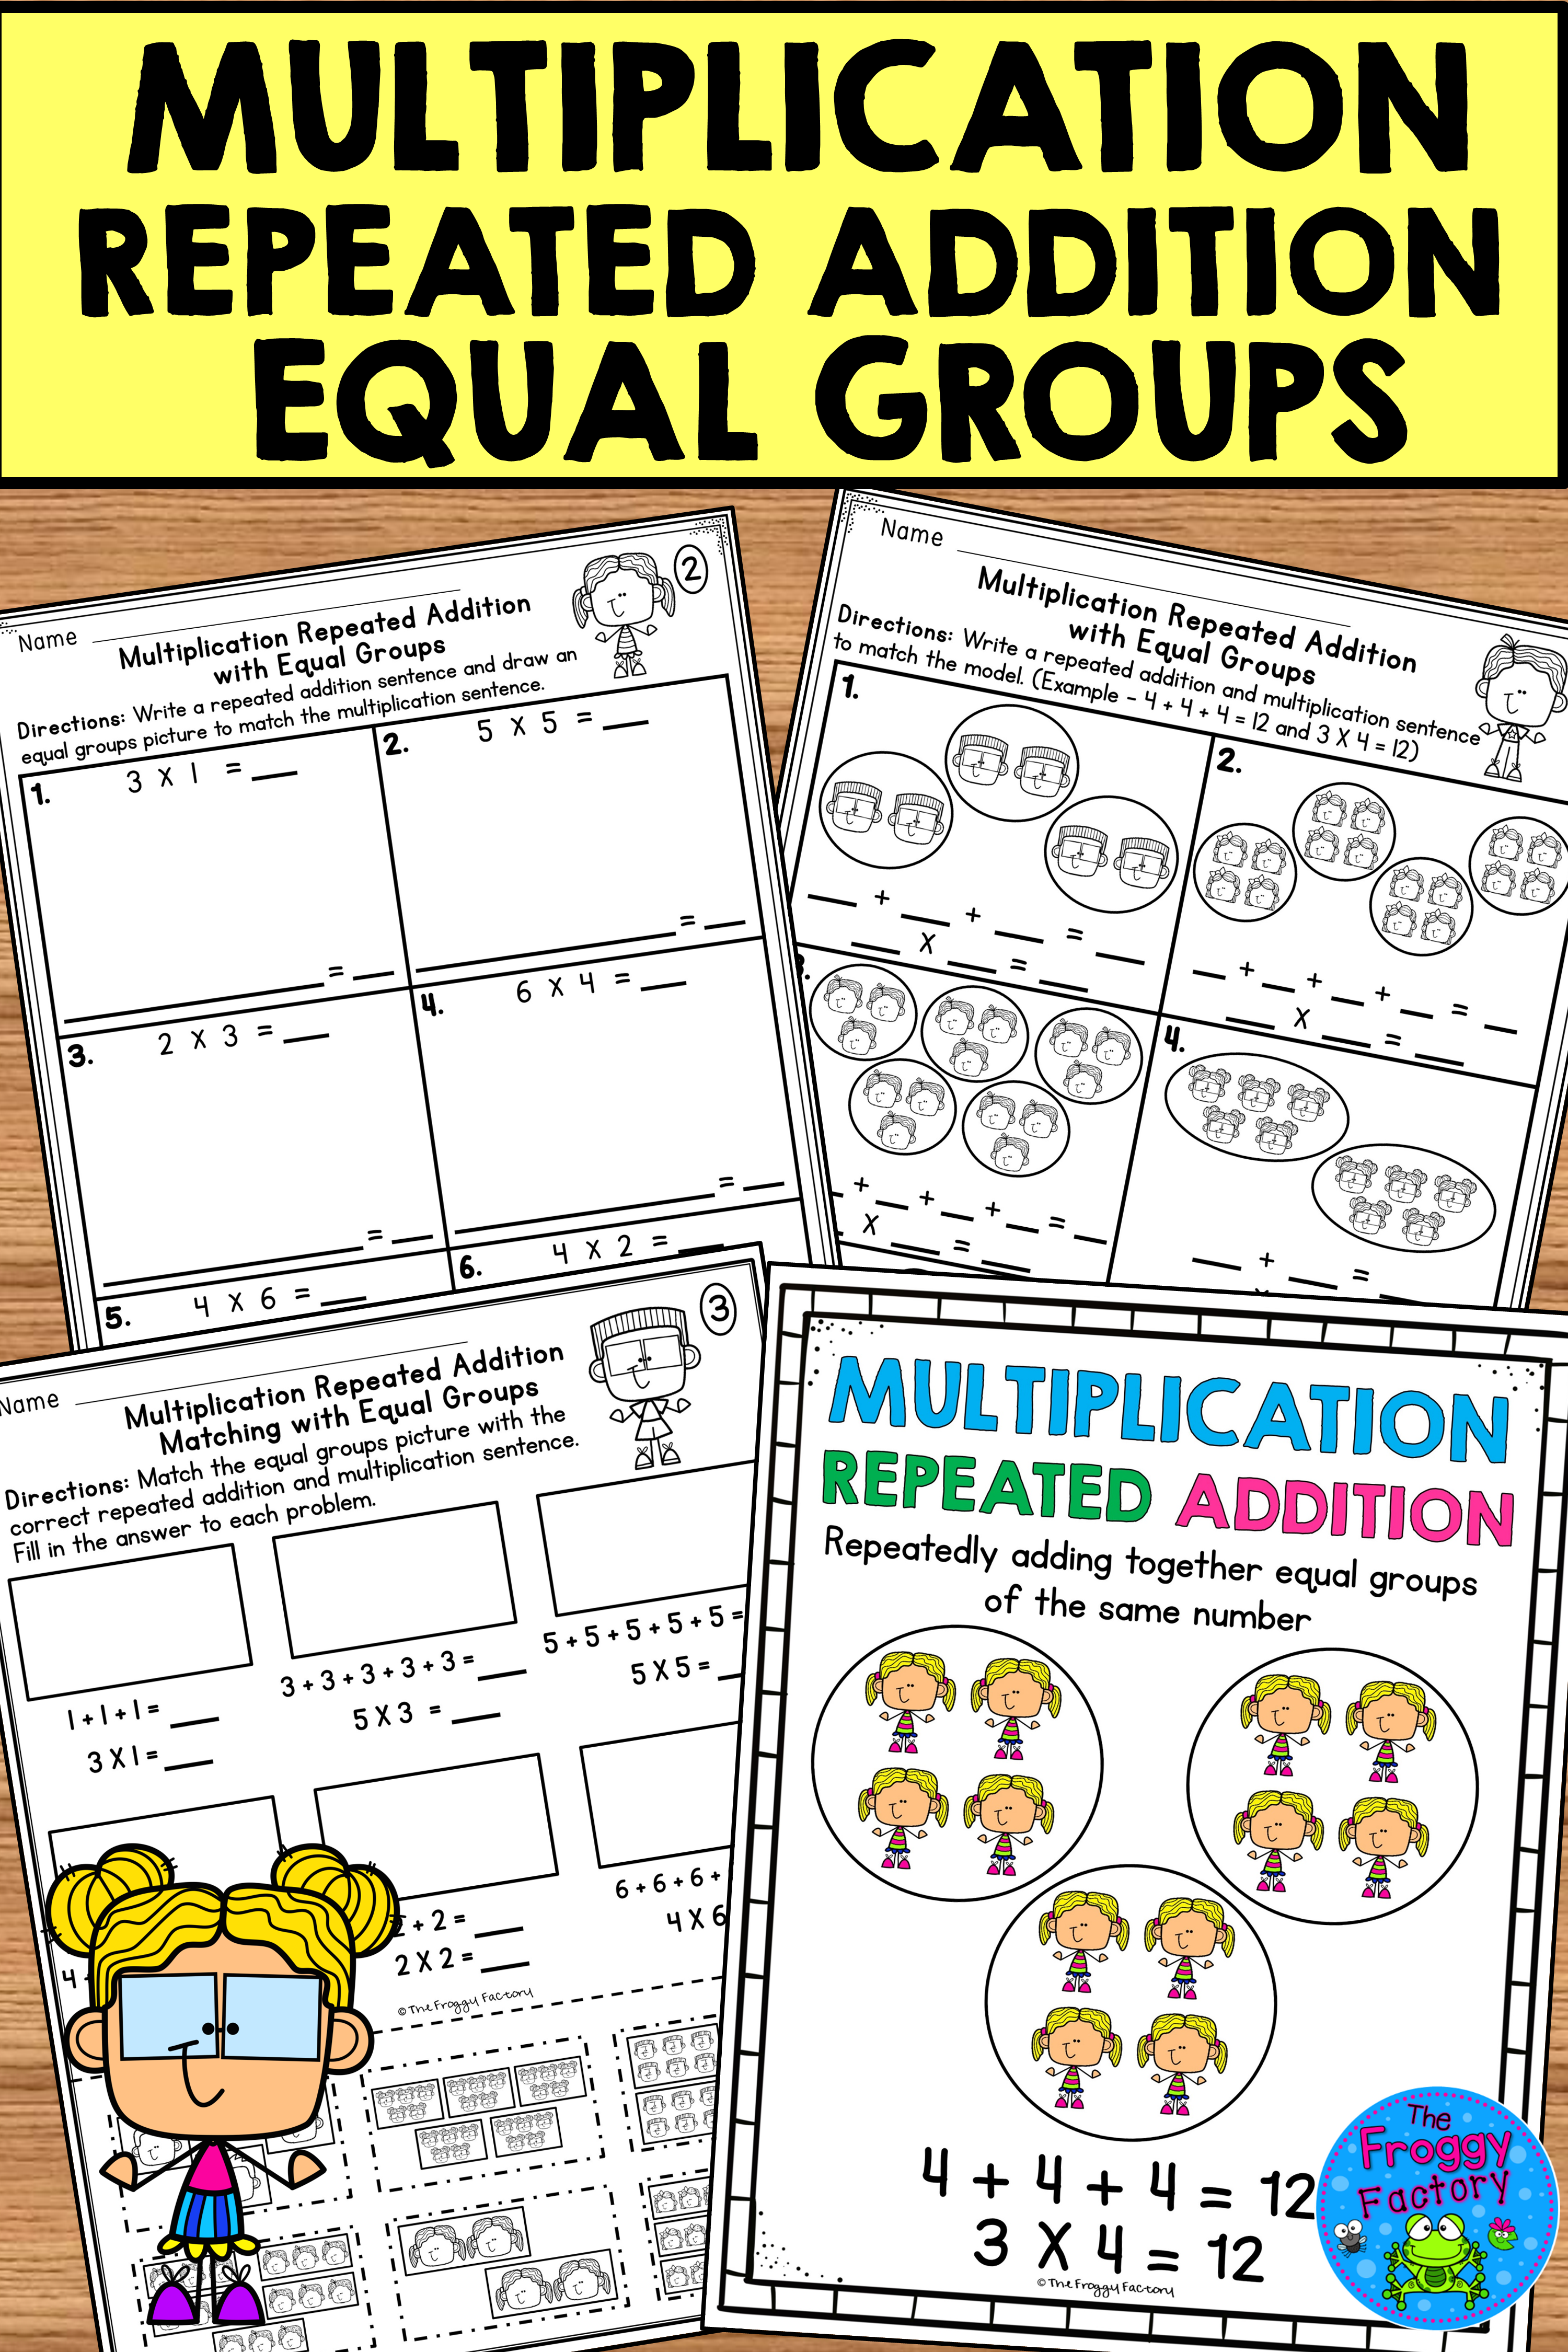 Multiplication Repeated Addition Equal Groups Worksheets